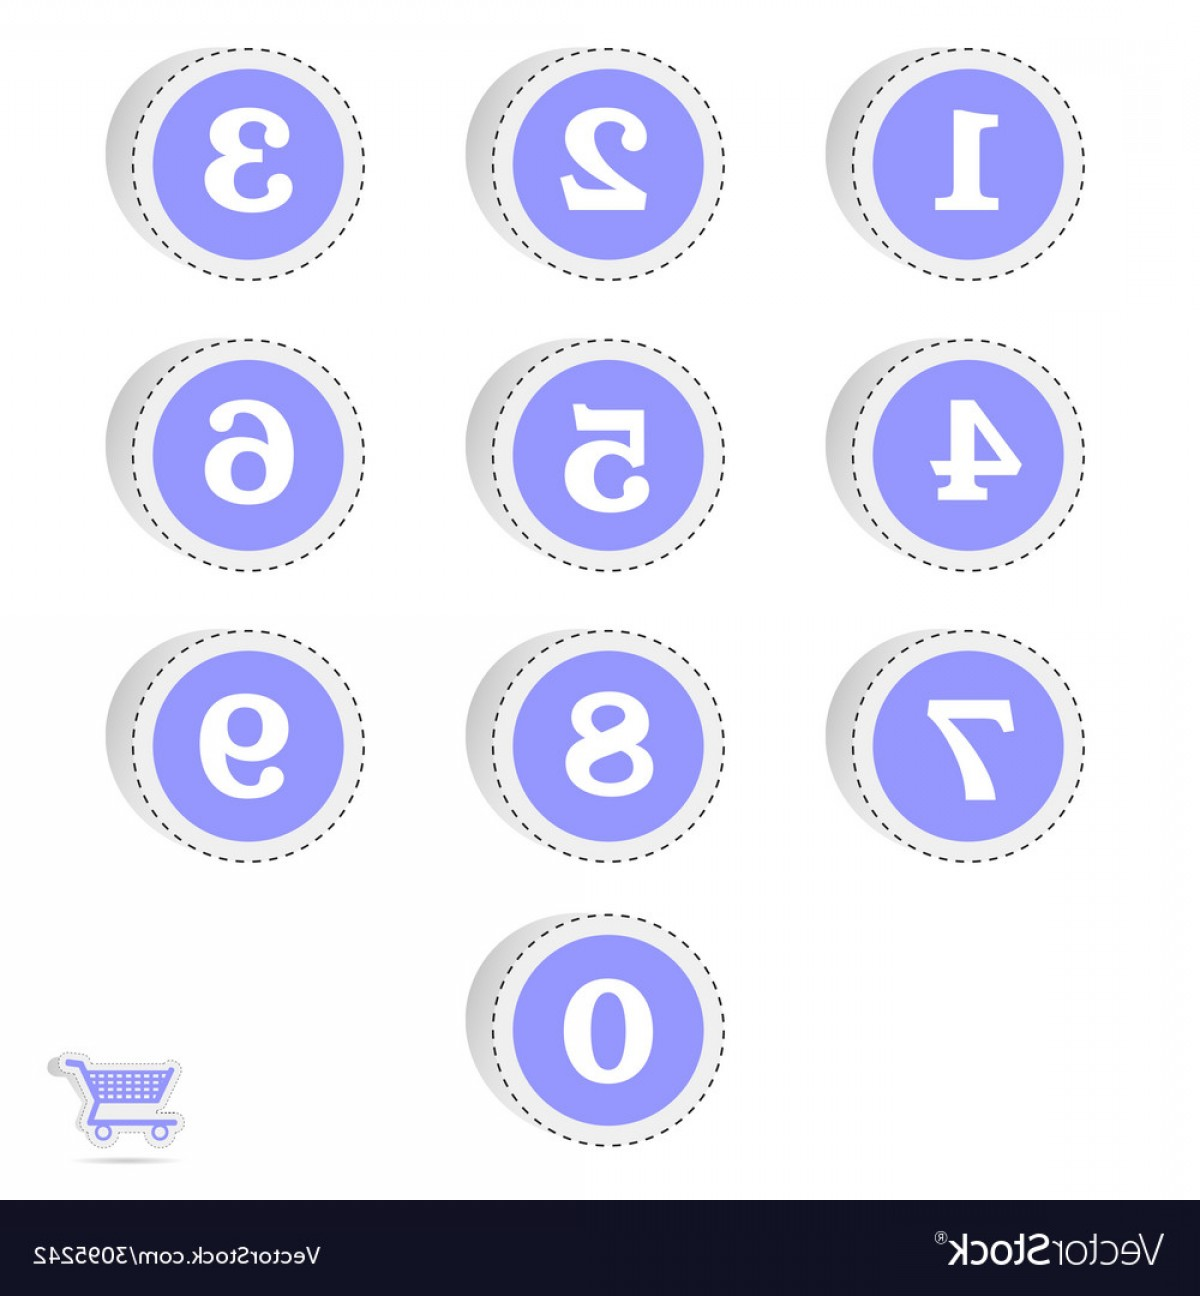 Numbered Tab Vectors In Blue: Blue Sticker With Numbers Vector